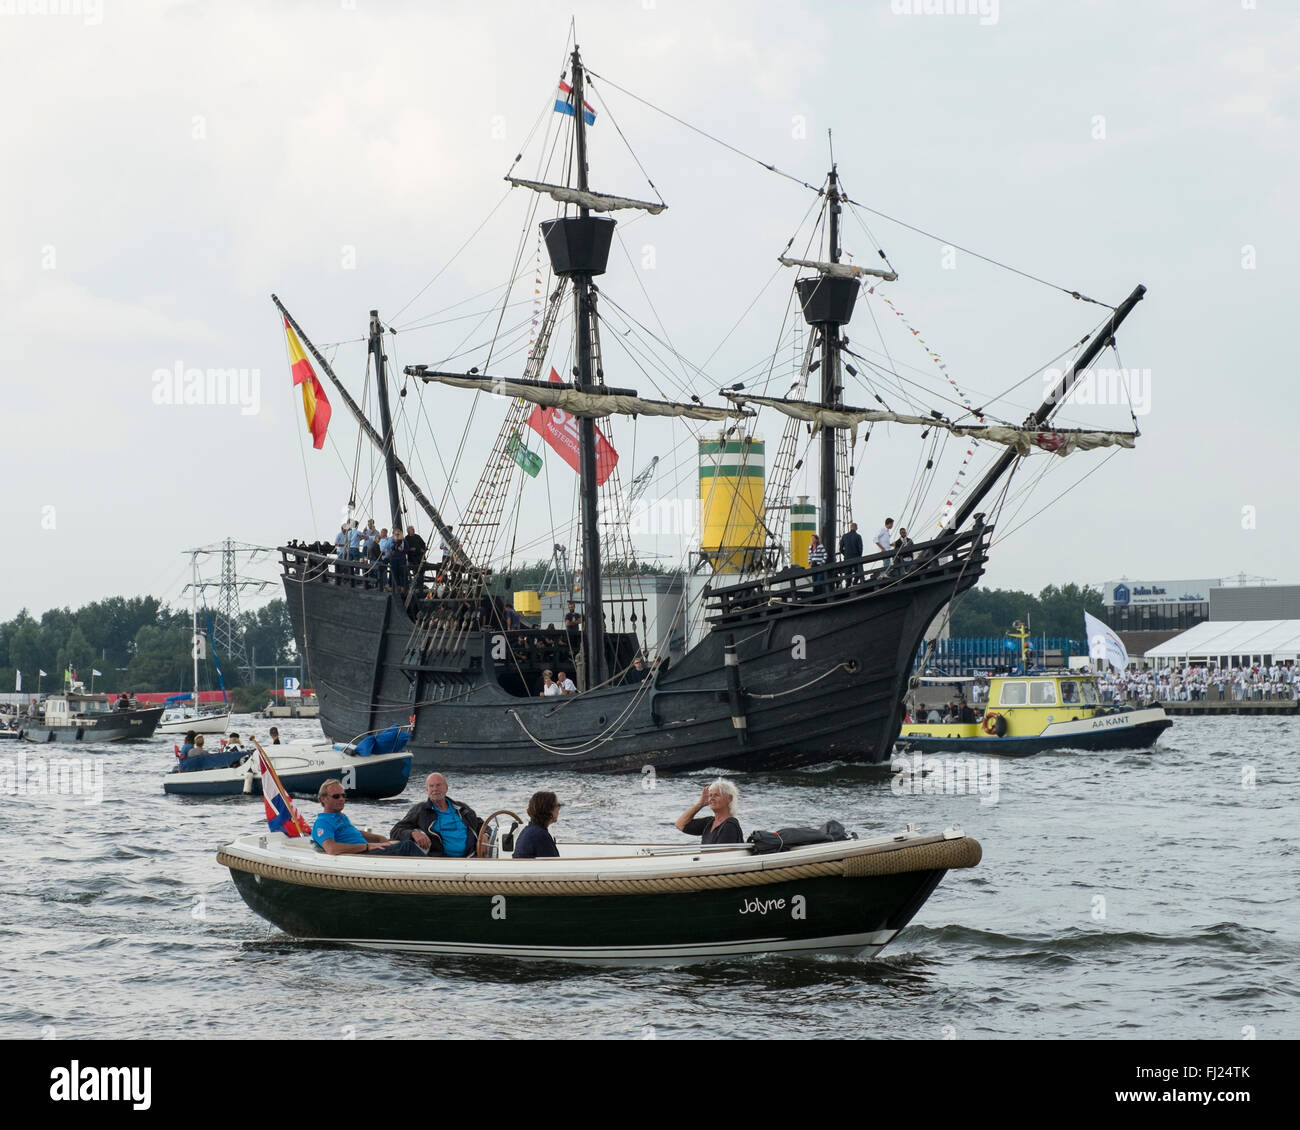 Nao Victoria was a Spanish carrack and the first ship to circumnavigate the world. This one is a replica built in Stock Photo